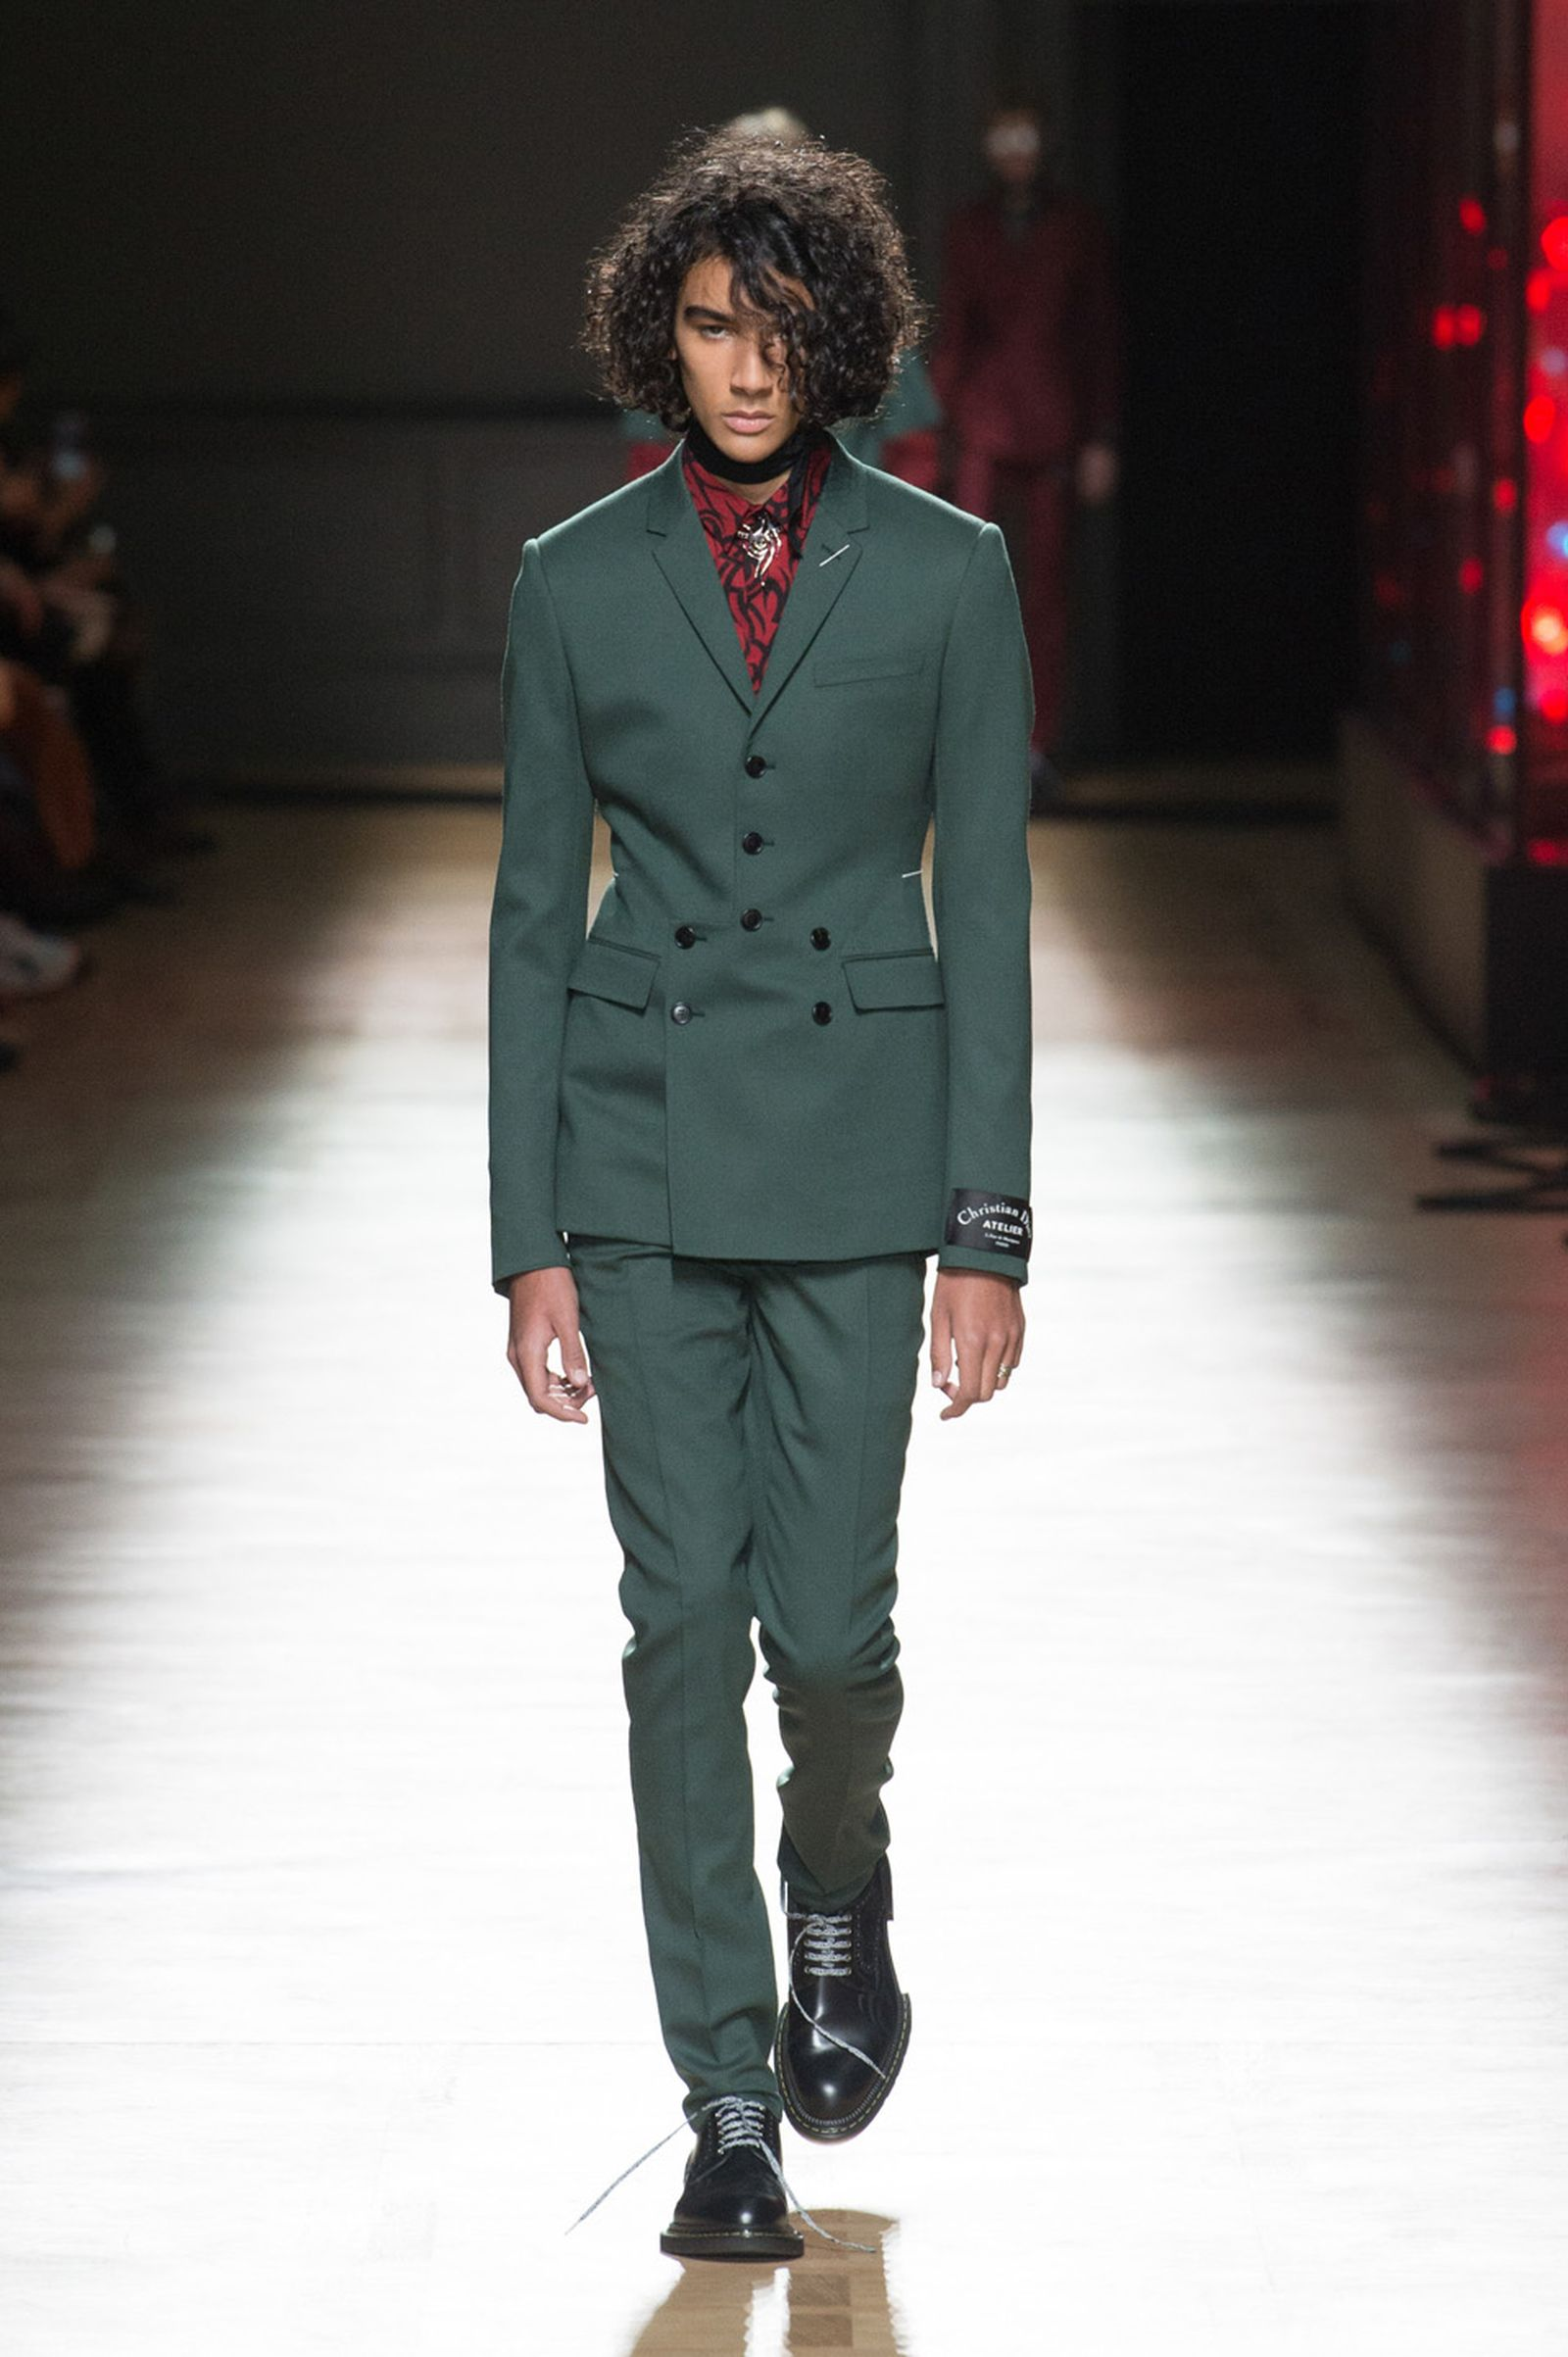 DIOR HOMME WINTER 18 19 BY PATRICE STABLE look26 Fall/WInter 2018 runway